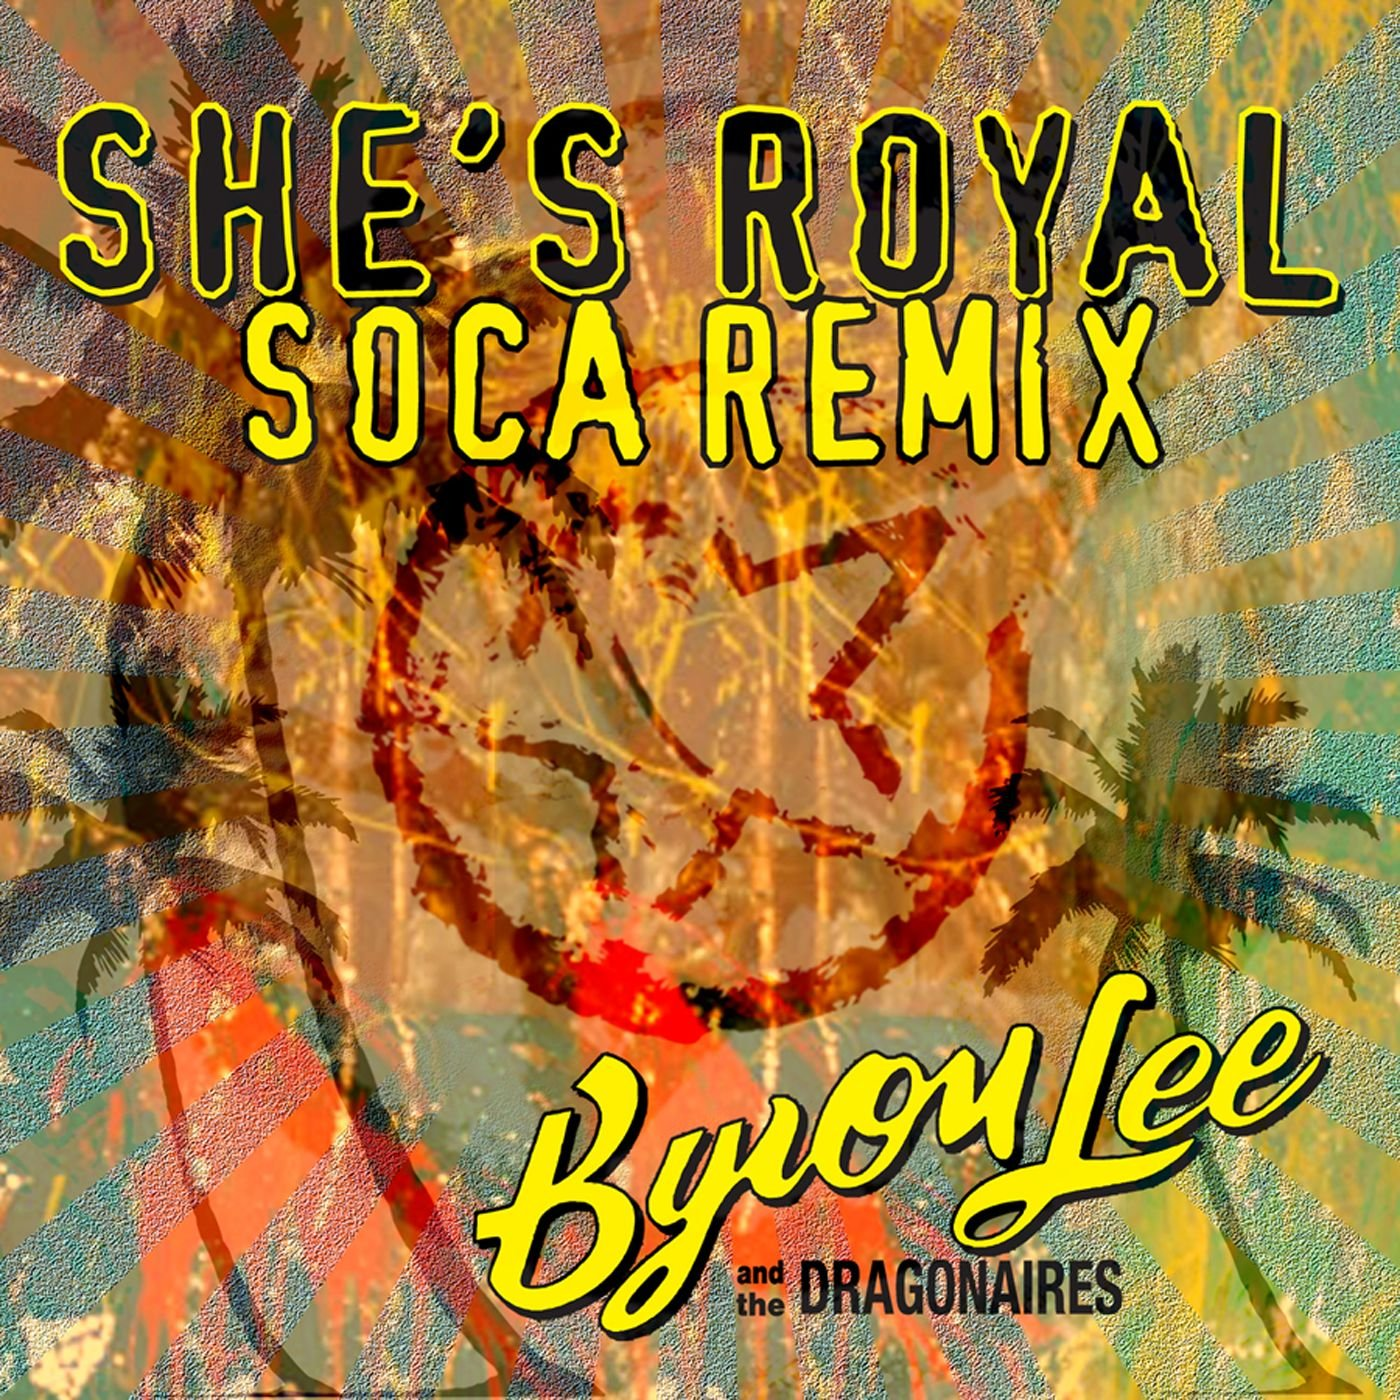 Byron Lee And The Dragonaires-Shes Royal (Soca Remix)-(VPCDS6474)-LIMITED EDITION-CDS-FLAC-2008-YARD